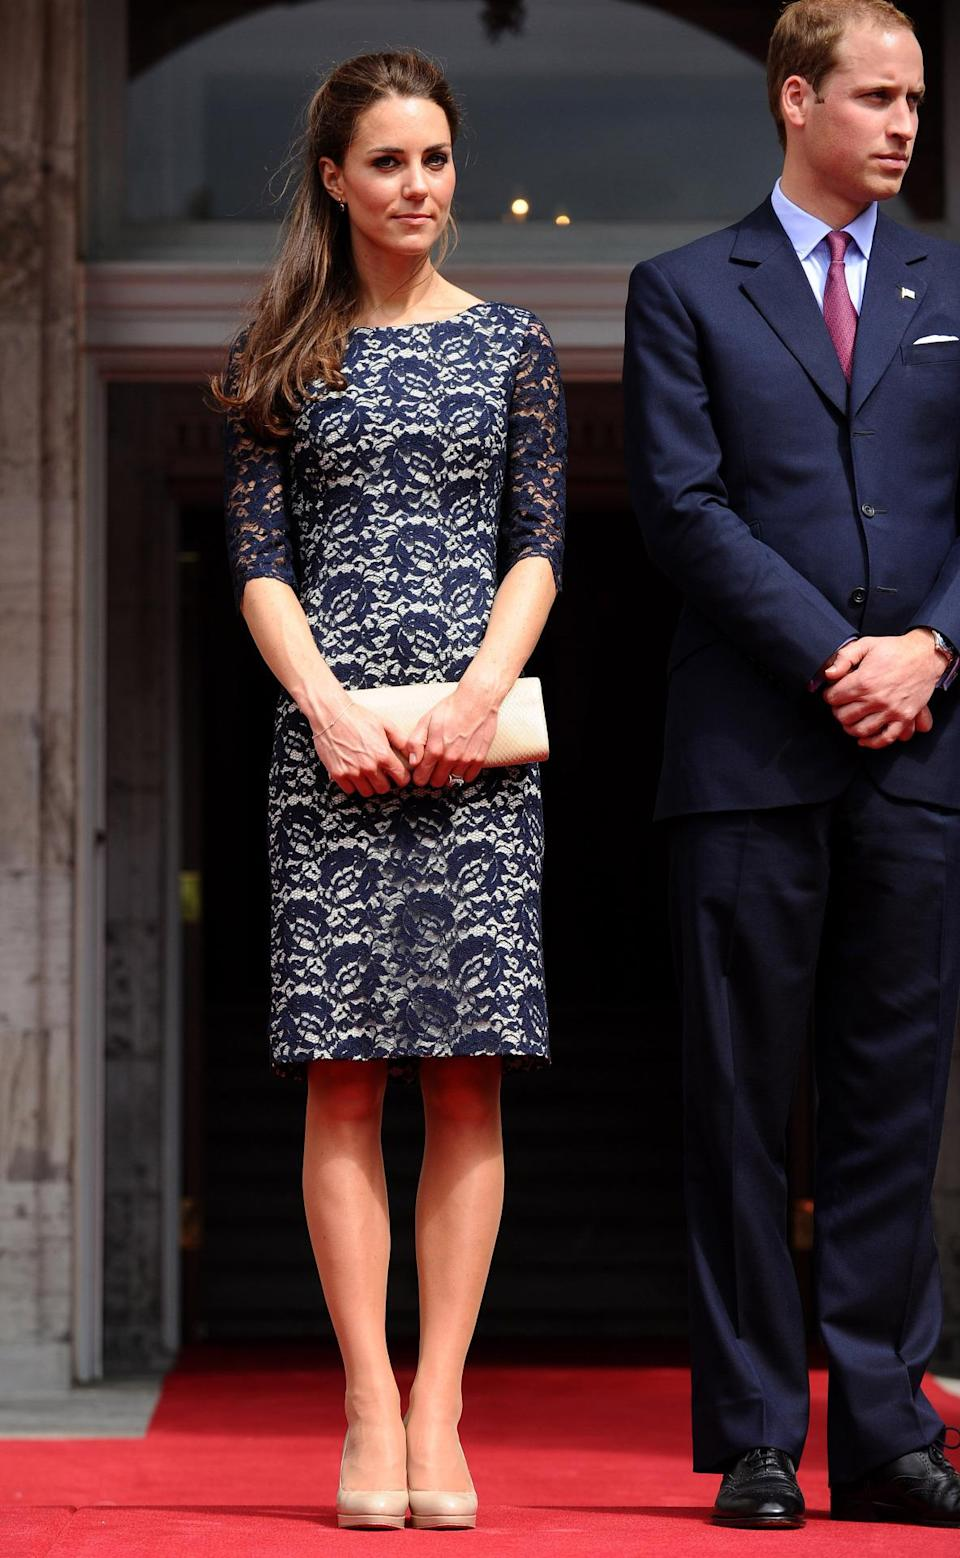 <p>Kate arrived in Canada wearing a black lace dress by Erdem, a Stuart Weitzman clutch and nude pumps.</p><p><i>[Photo: PA]</i></p>